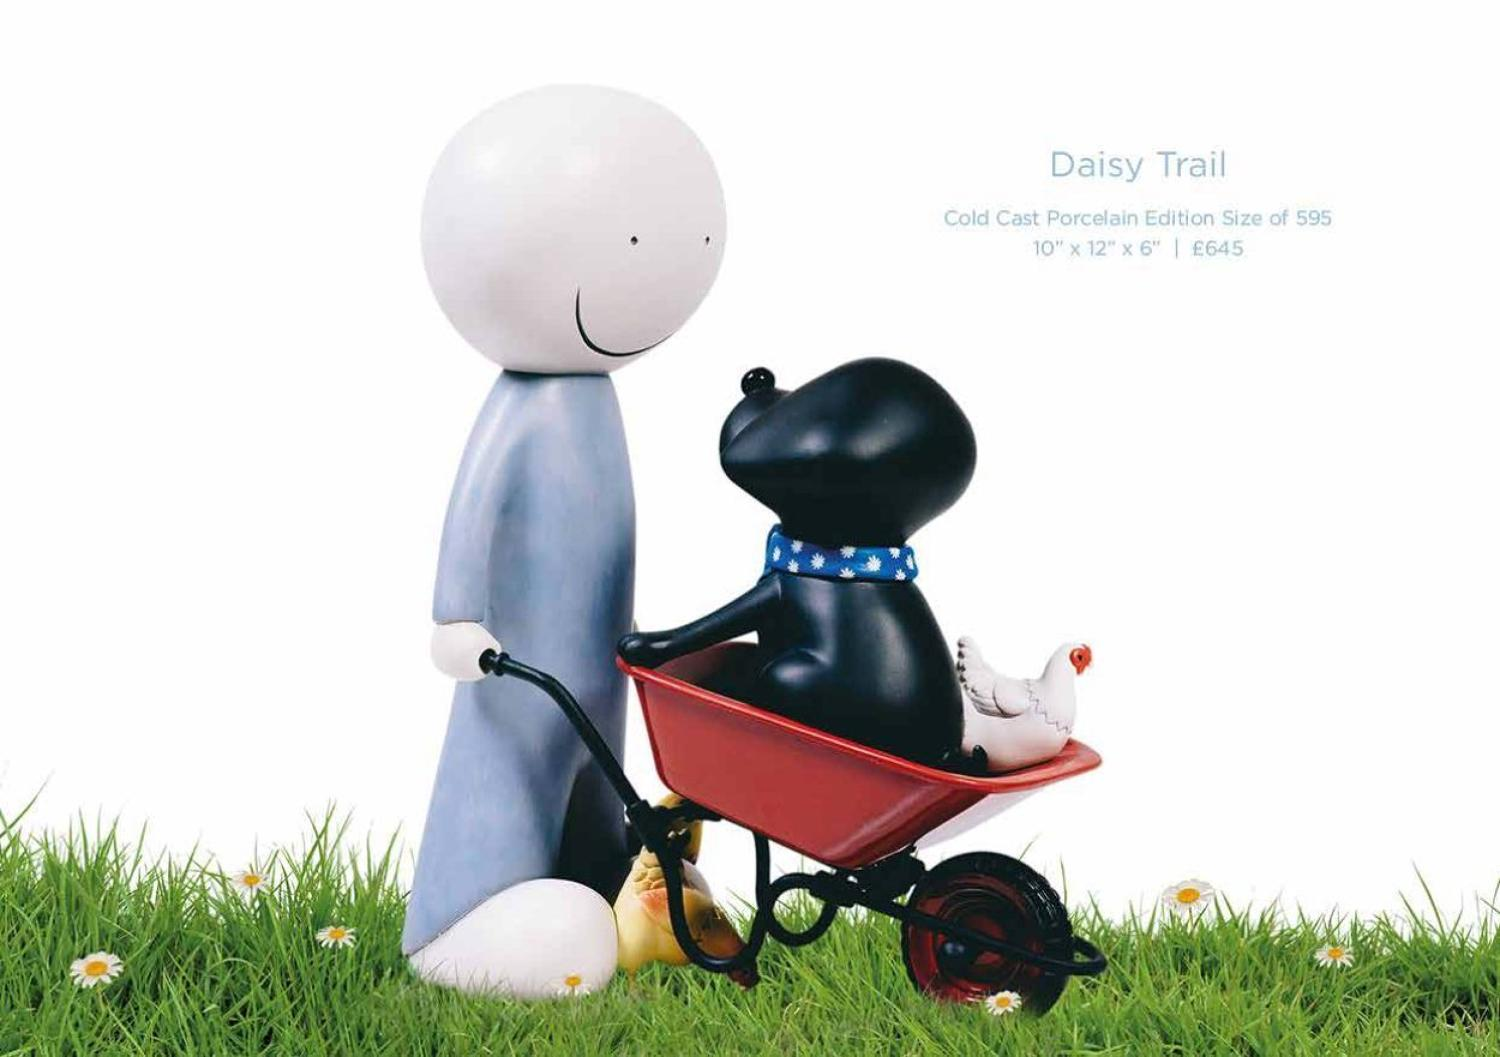 Doug Hyde - Daisy Trail Sculpture